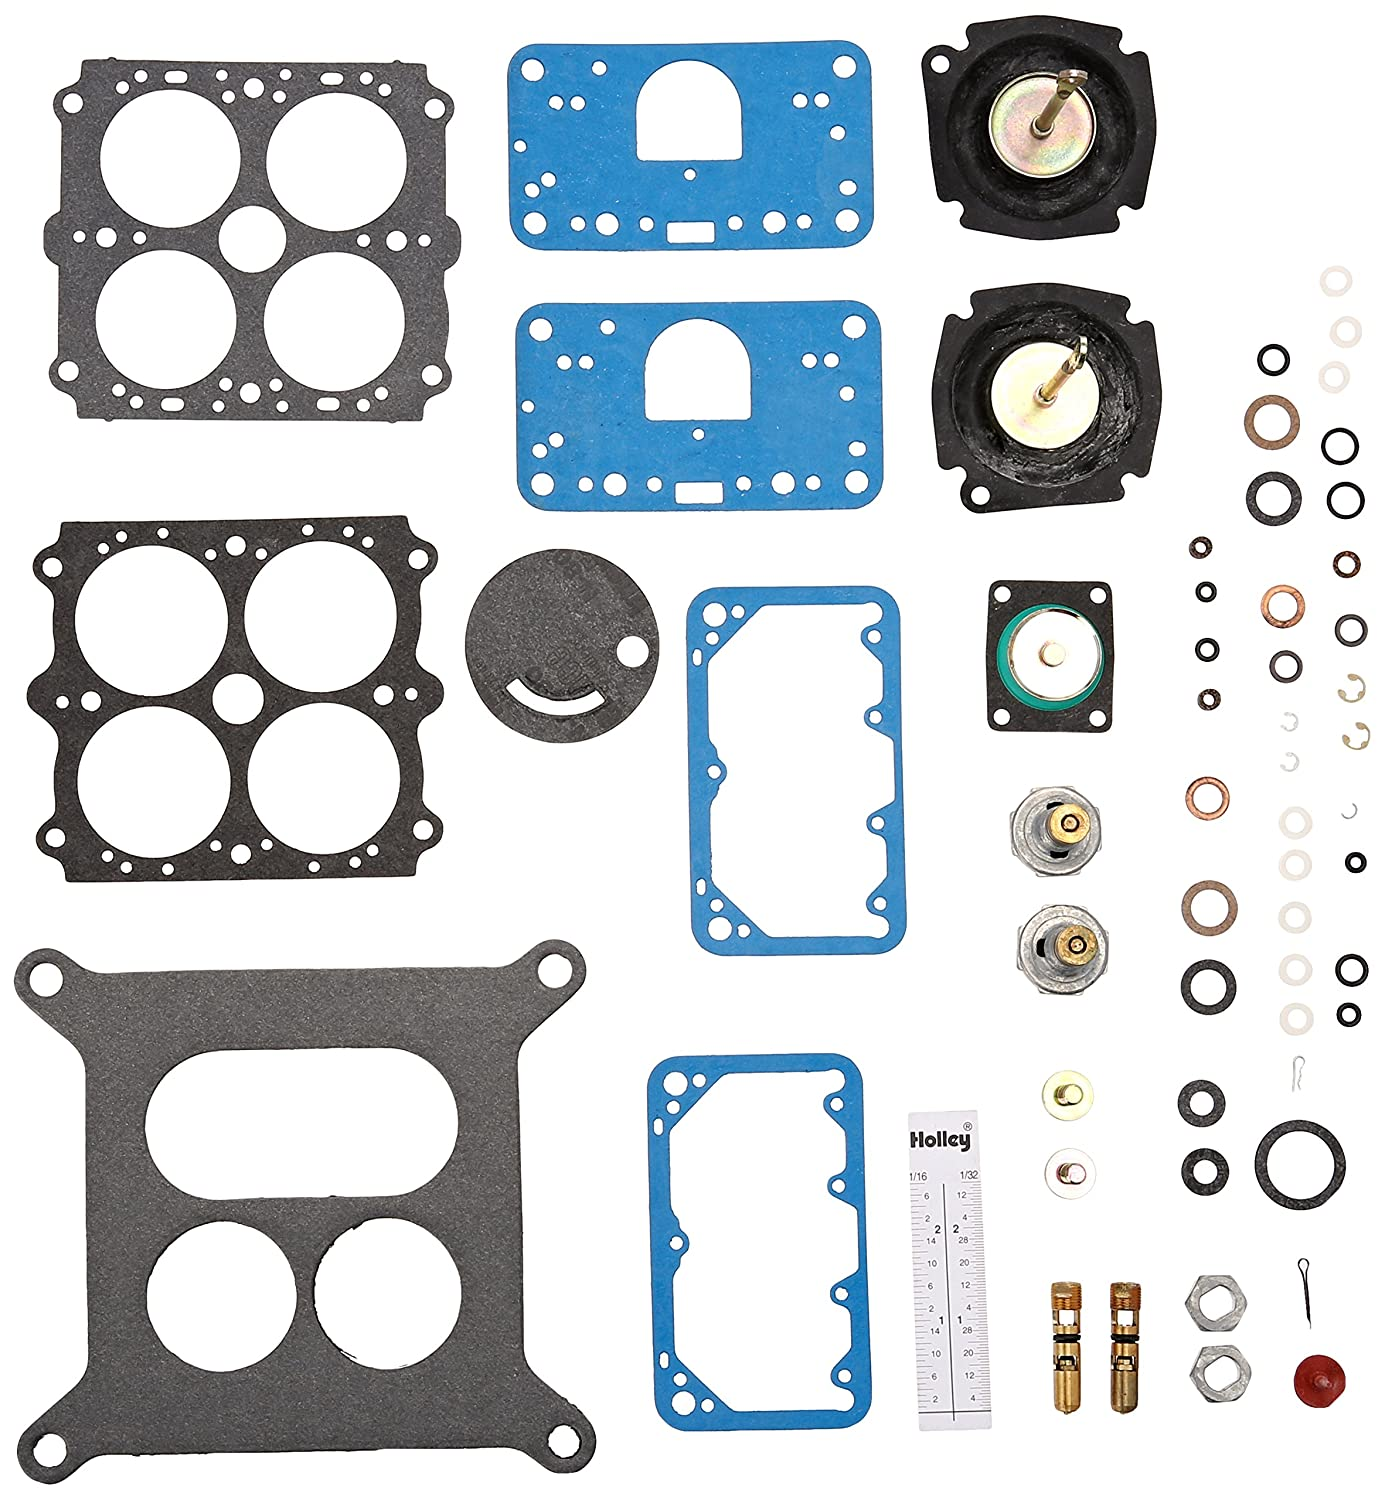 Holley 703-45 Marine Carburetor Rebuild Kit HOL 703-45